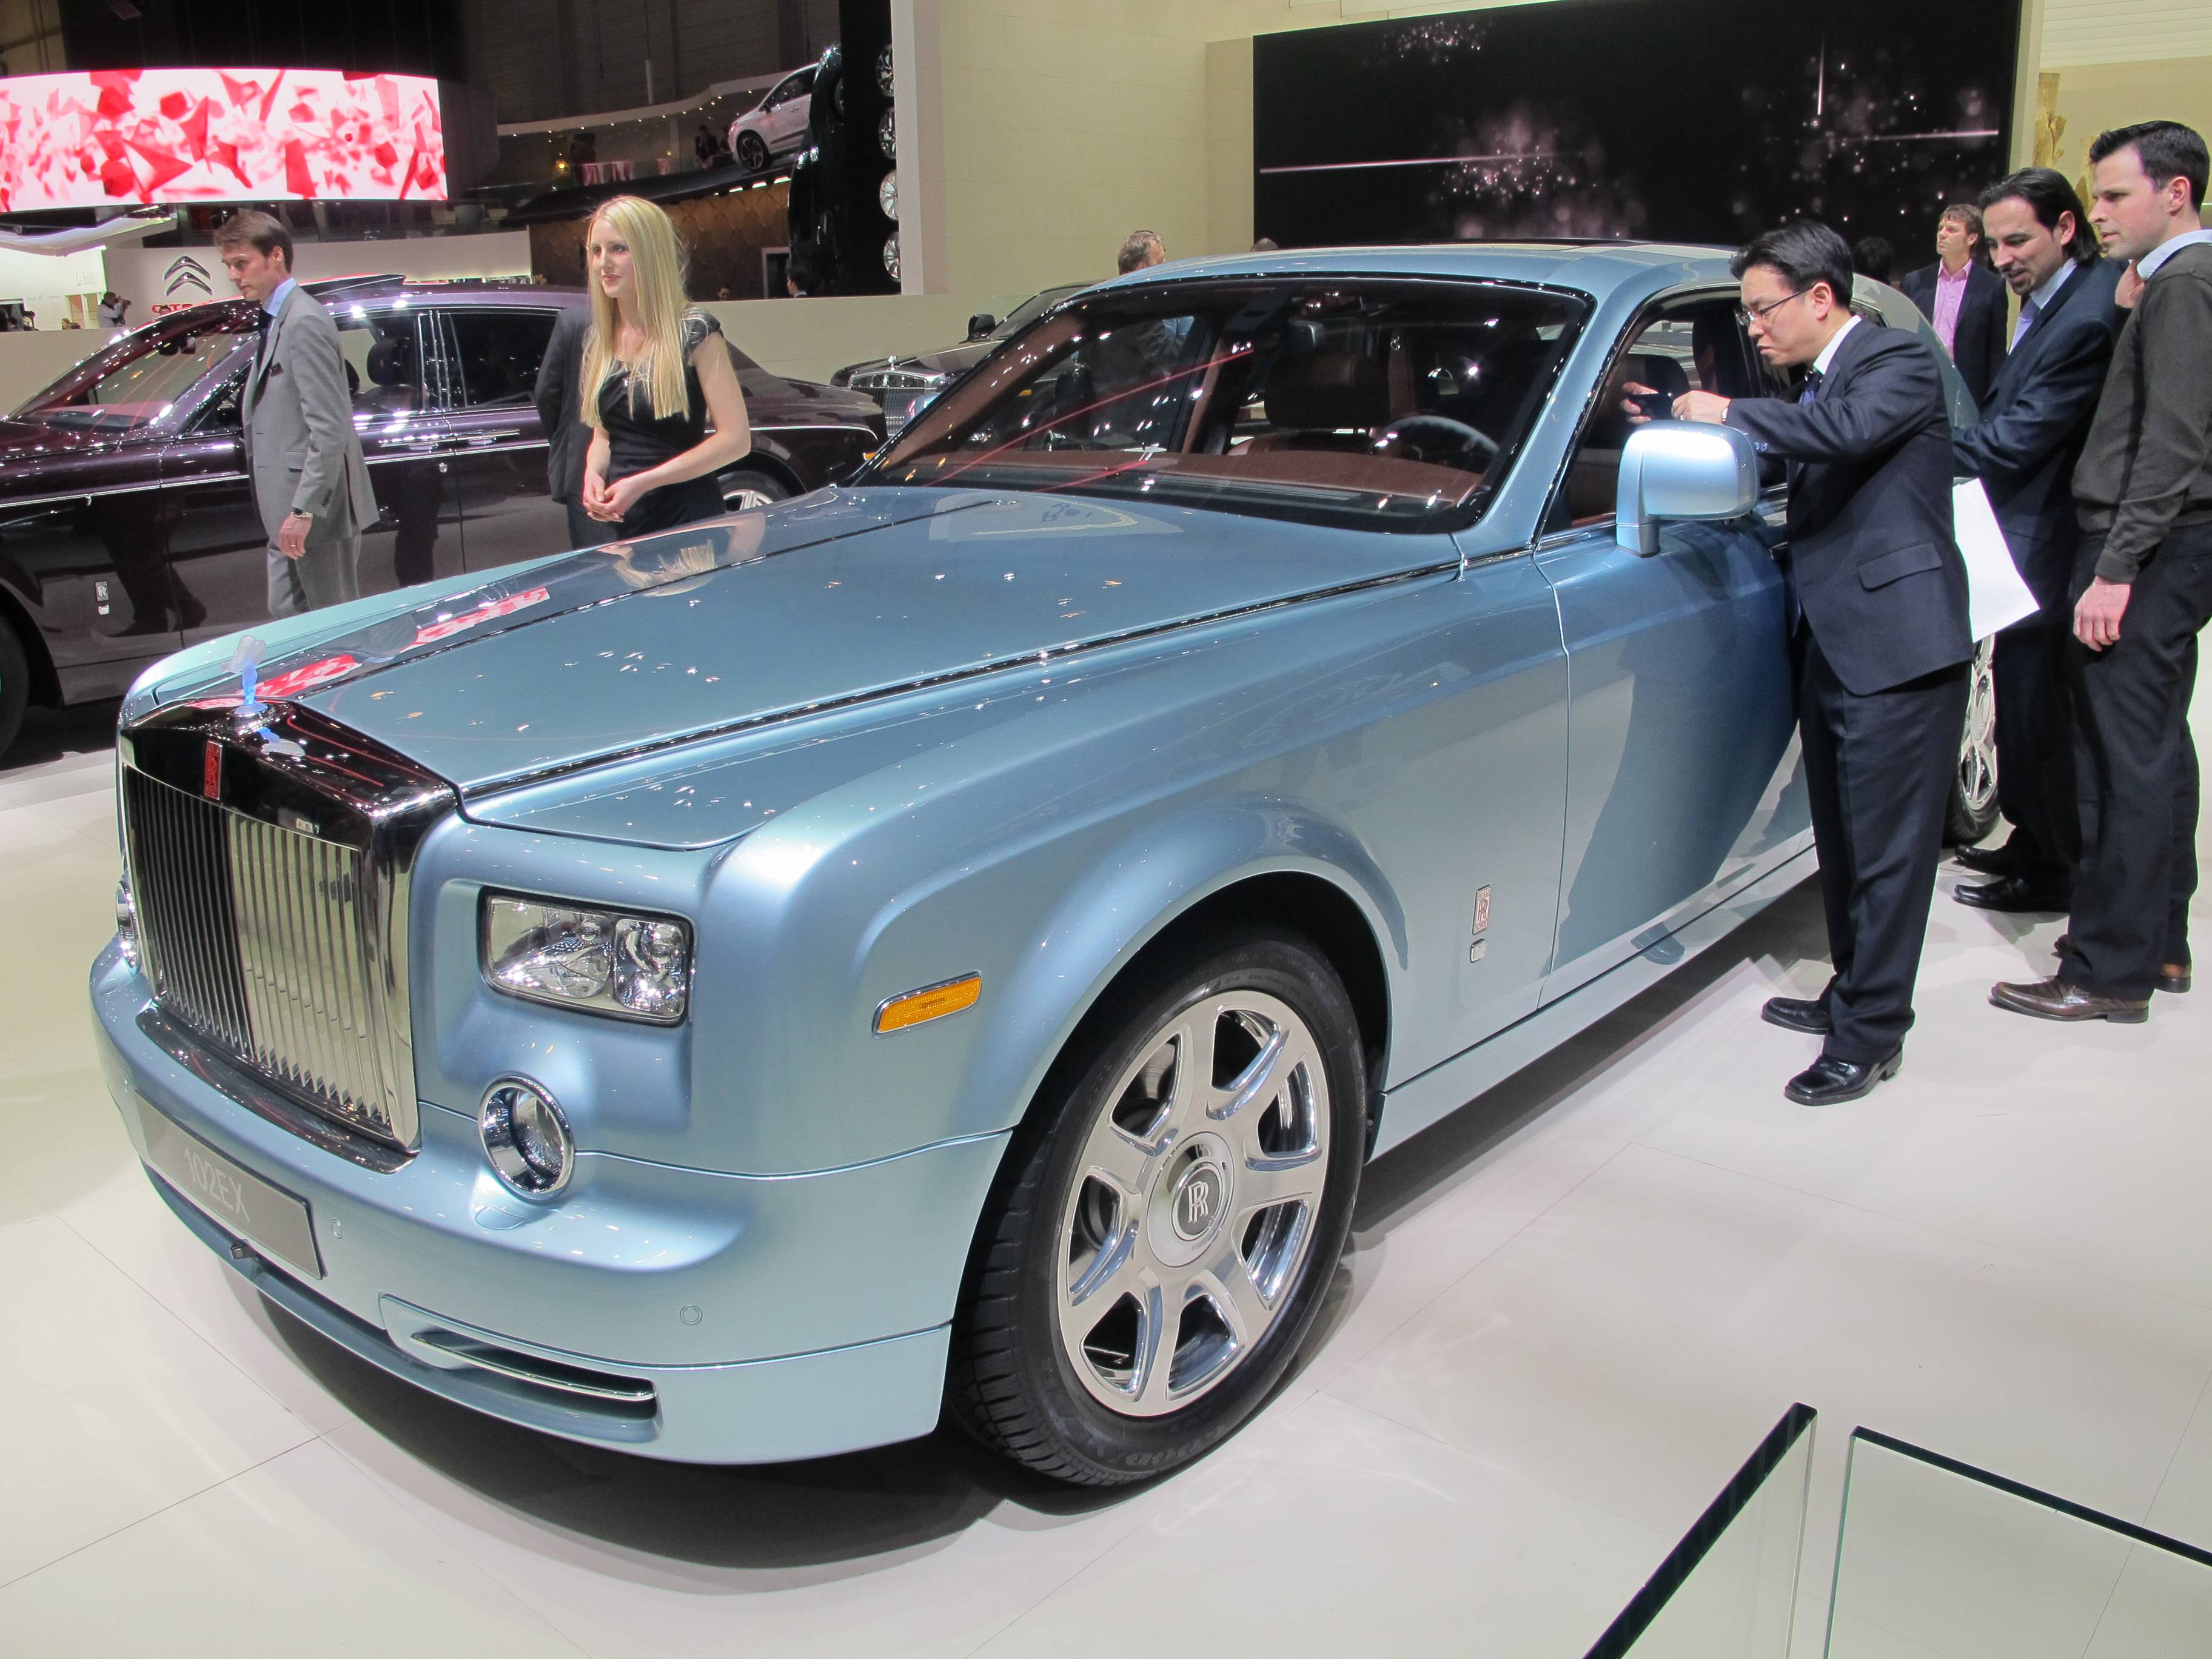 Geneva Motor Show- Rolls-Royce 102EX (Electric Vehicle)